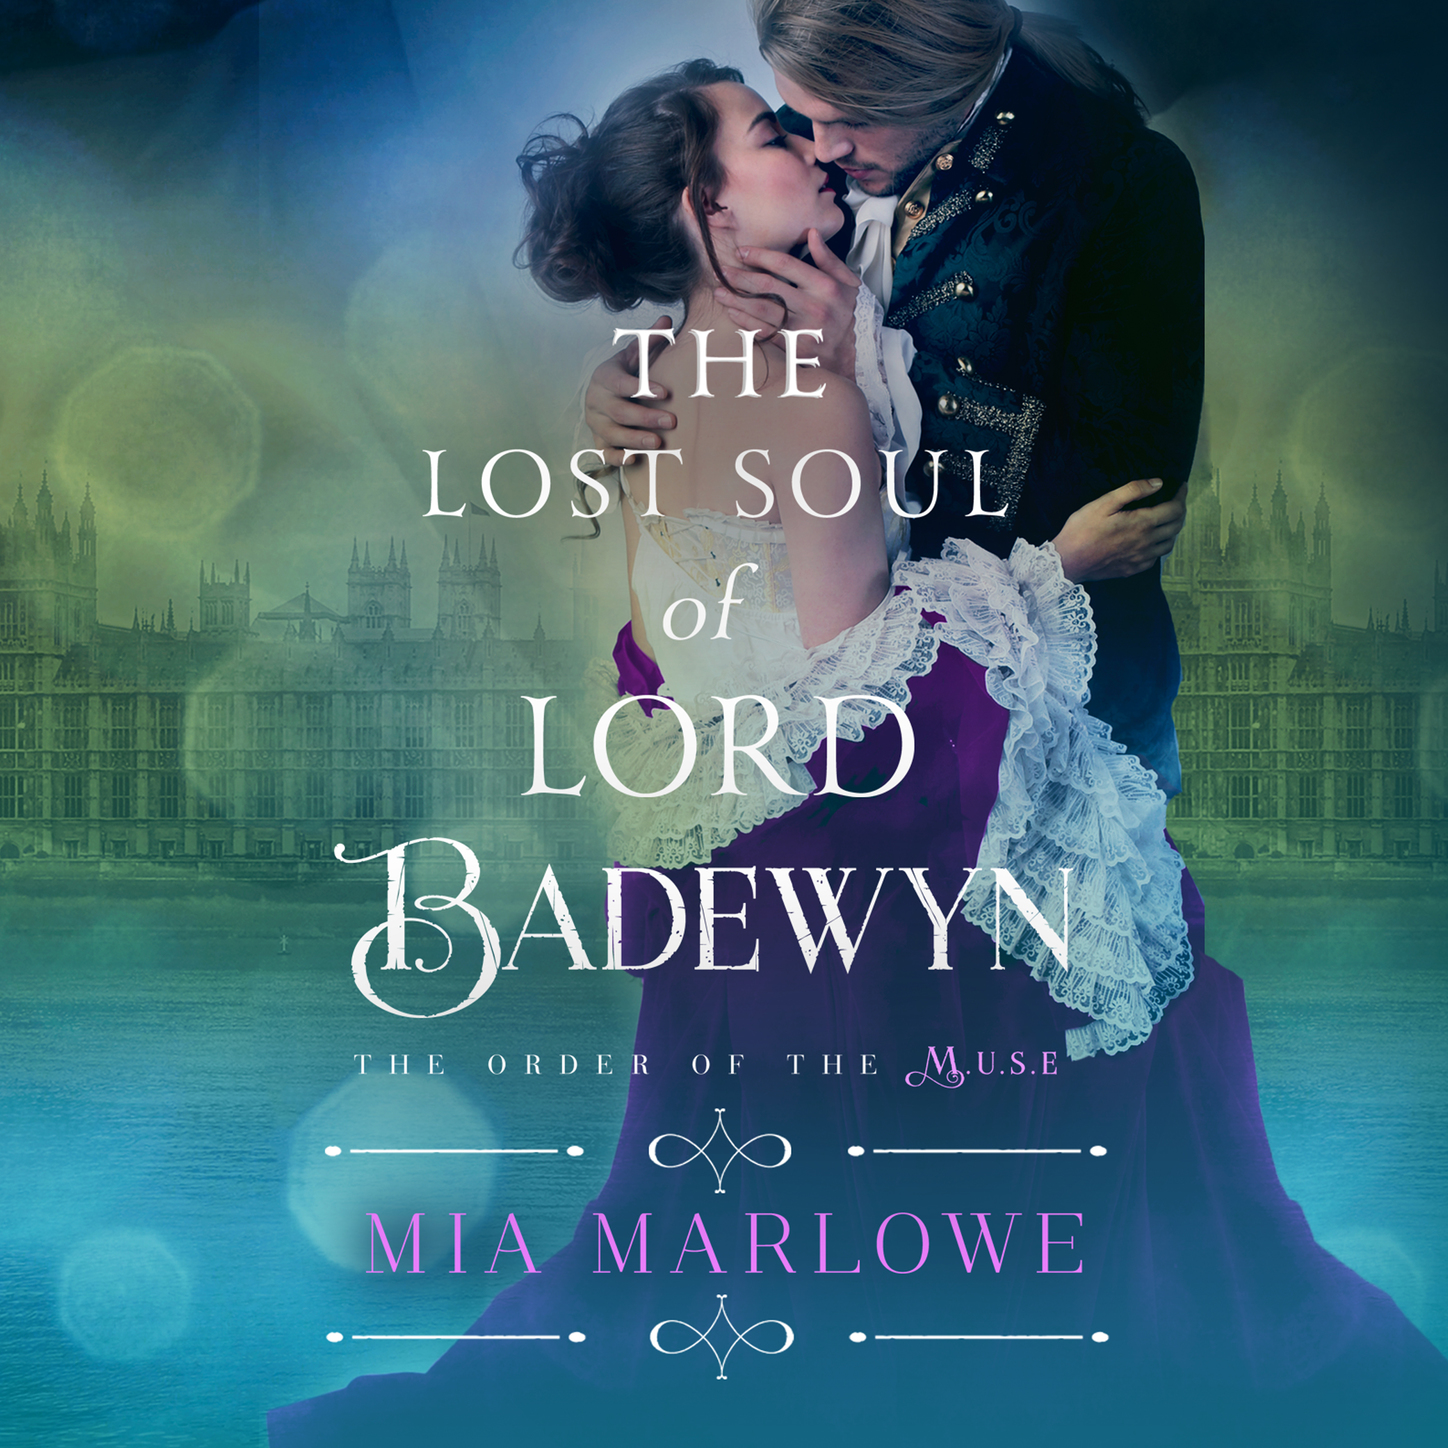 Mia Marlowe The Lost Soul of Lord Badewyn - The Order of the Muse, Book 3 (Unabridged) trent haley expansion the secrets of the soul volume 1